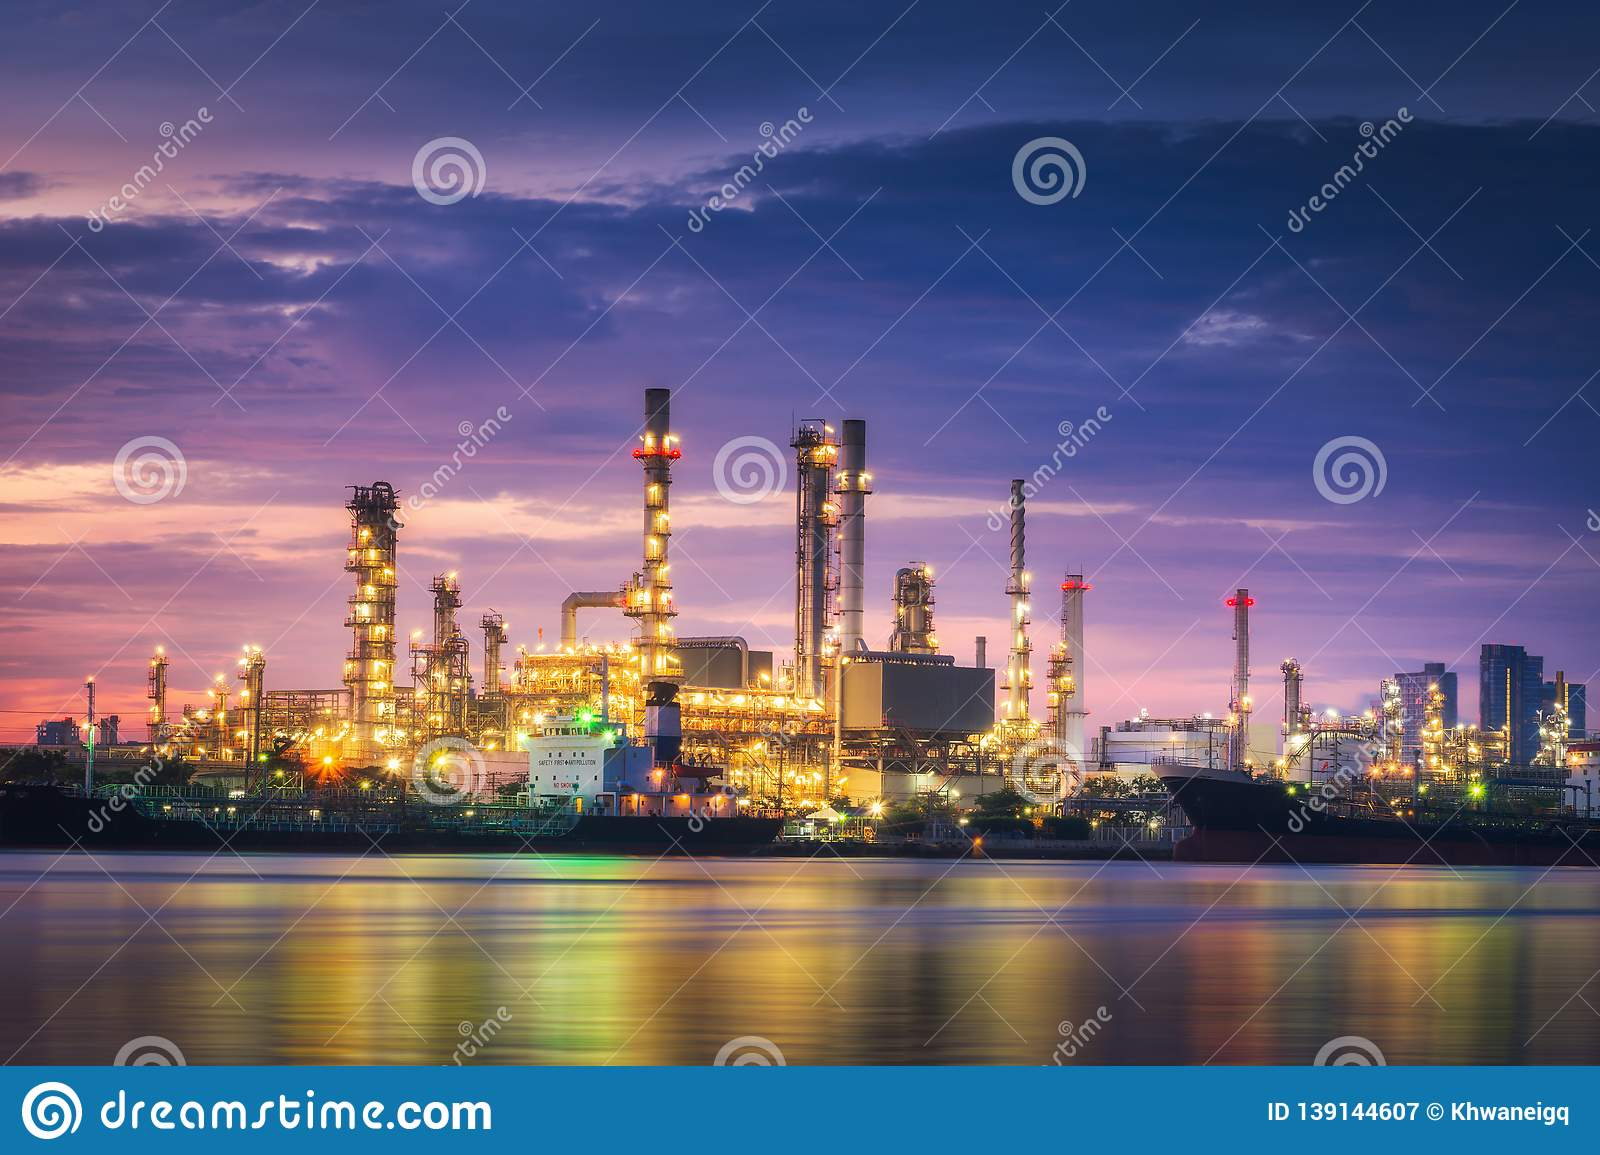 Landscape of oil and gas refinery manufacturing plant., Petrochemical or chemical distillation process buildings., Factory of